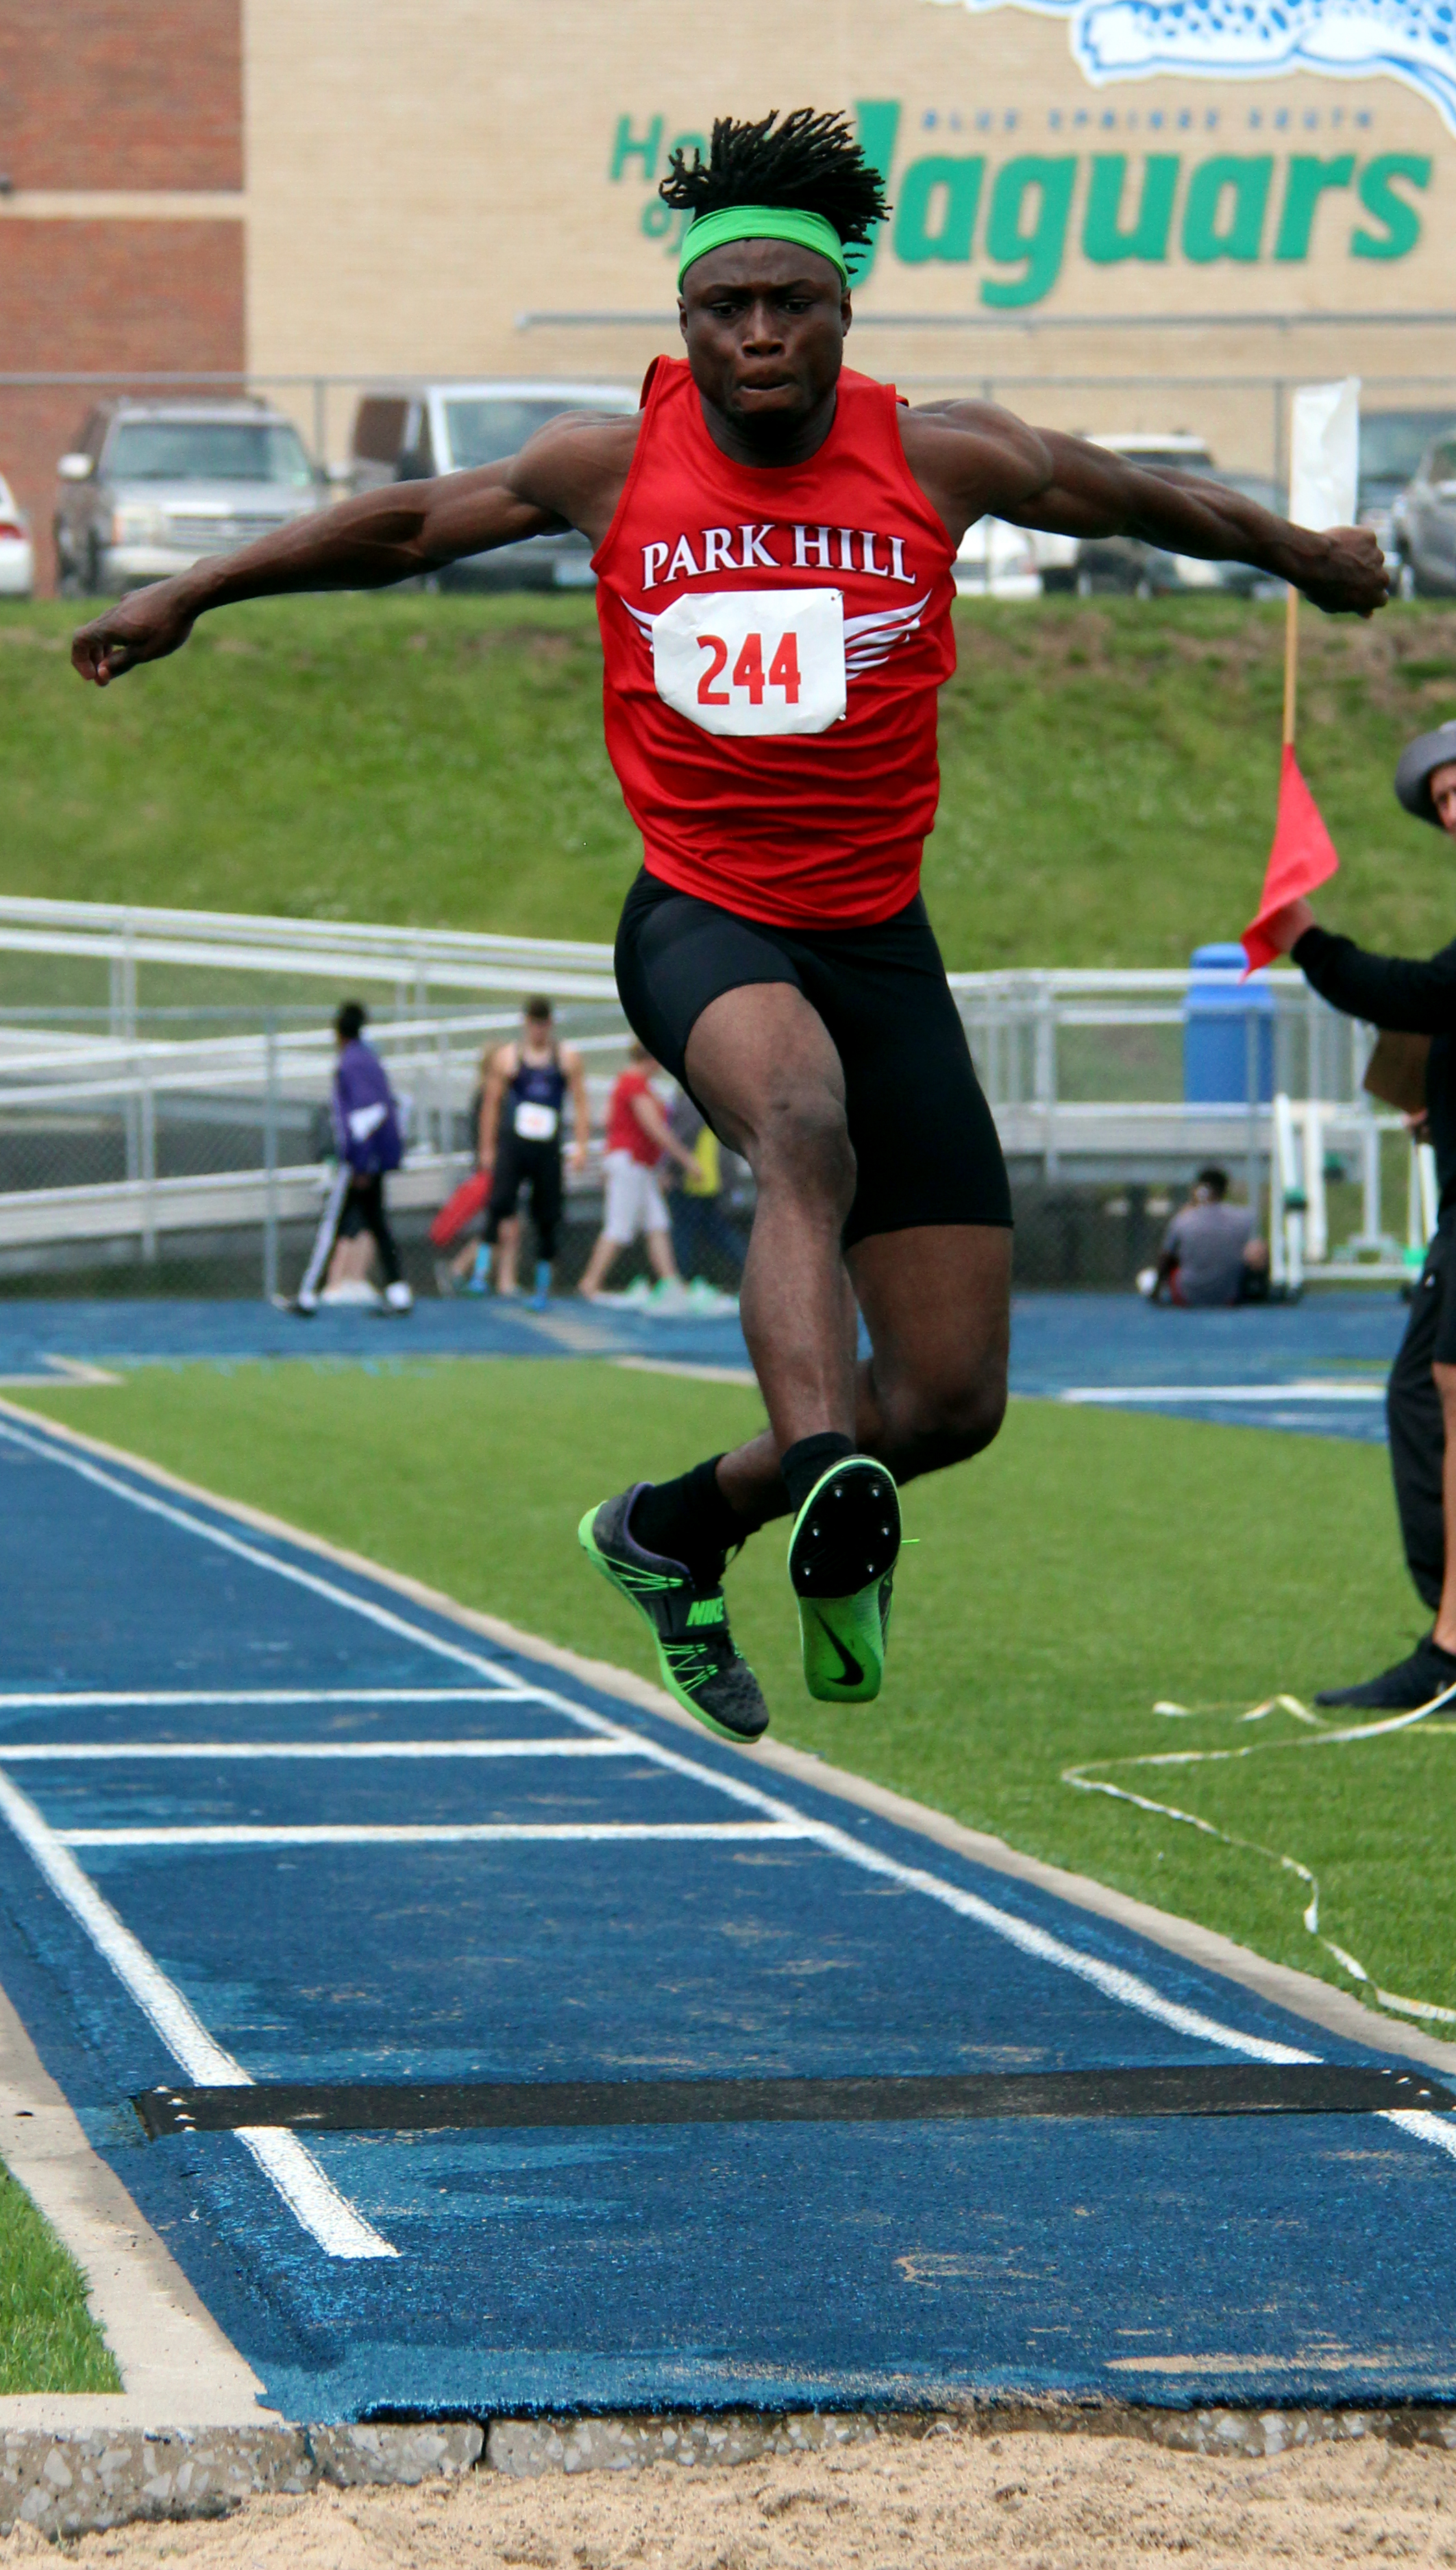 ROSS MARTIN/Citizen photo Park Hill senior Papay Glaywulu approaches the pit in the triple jump during the Class 5 Sectional 4 meet Saturday, May 20 in Blue Springs, Mo.